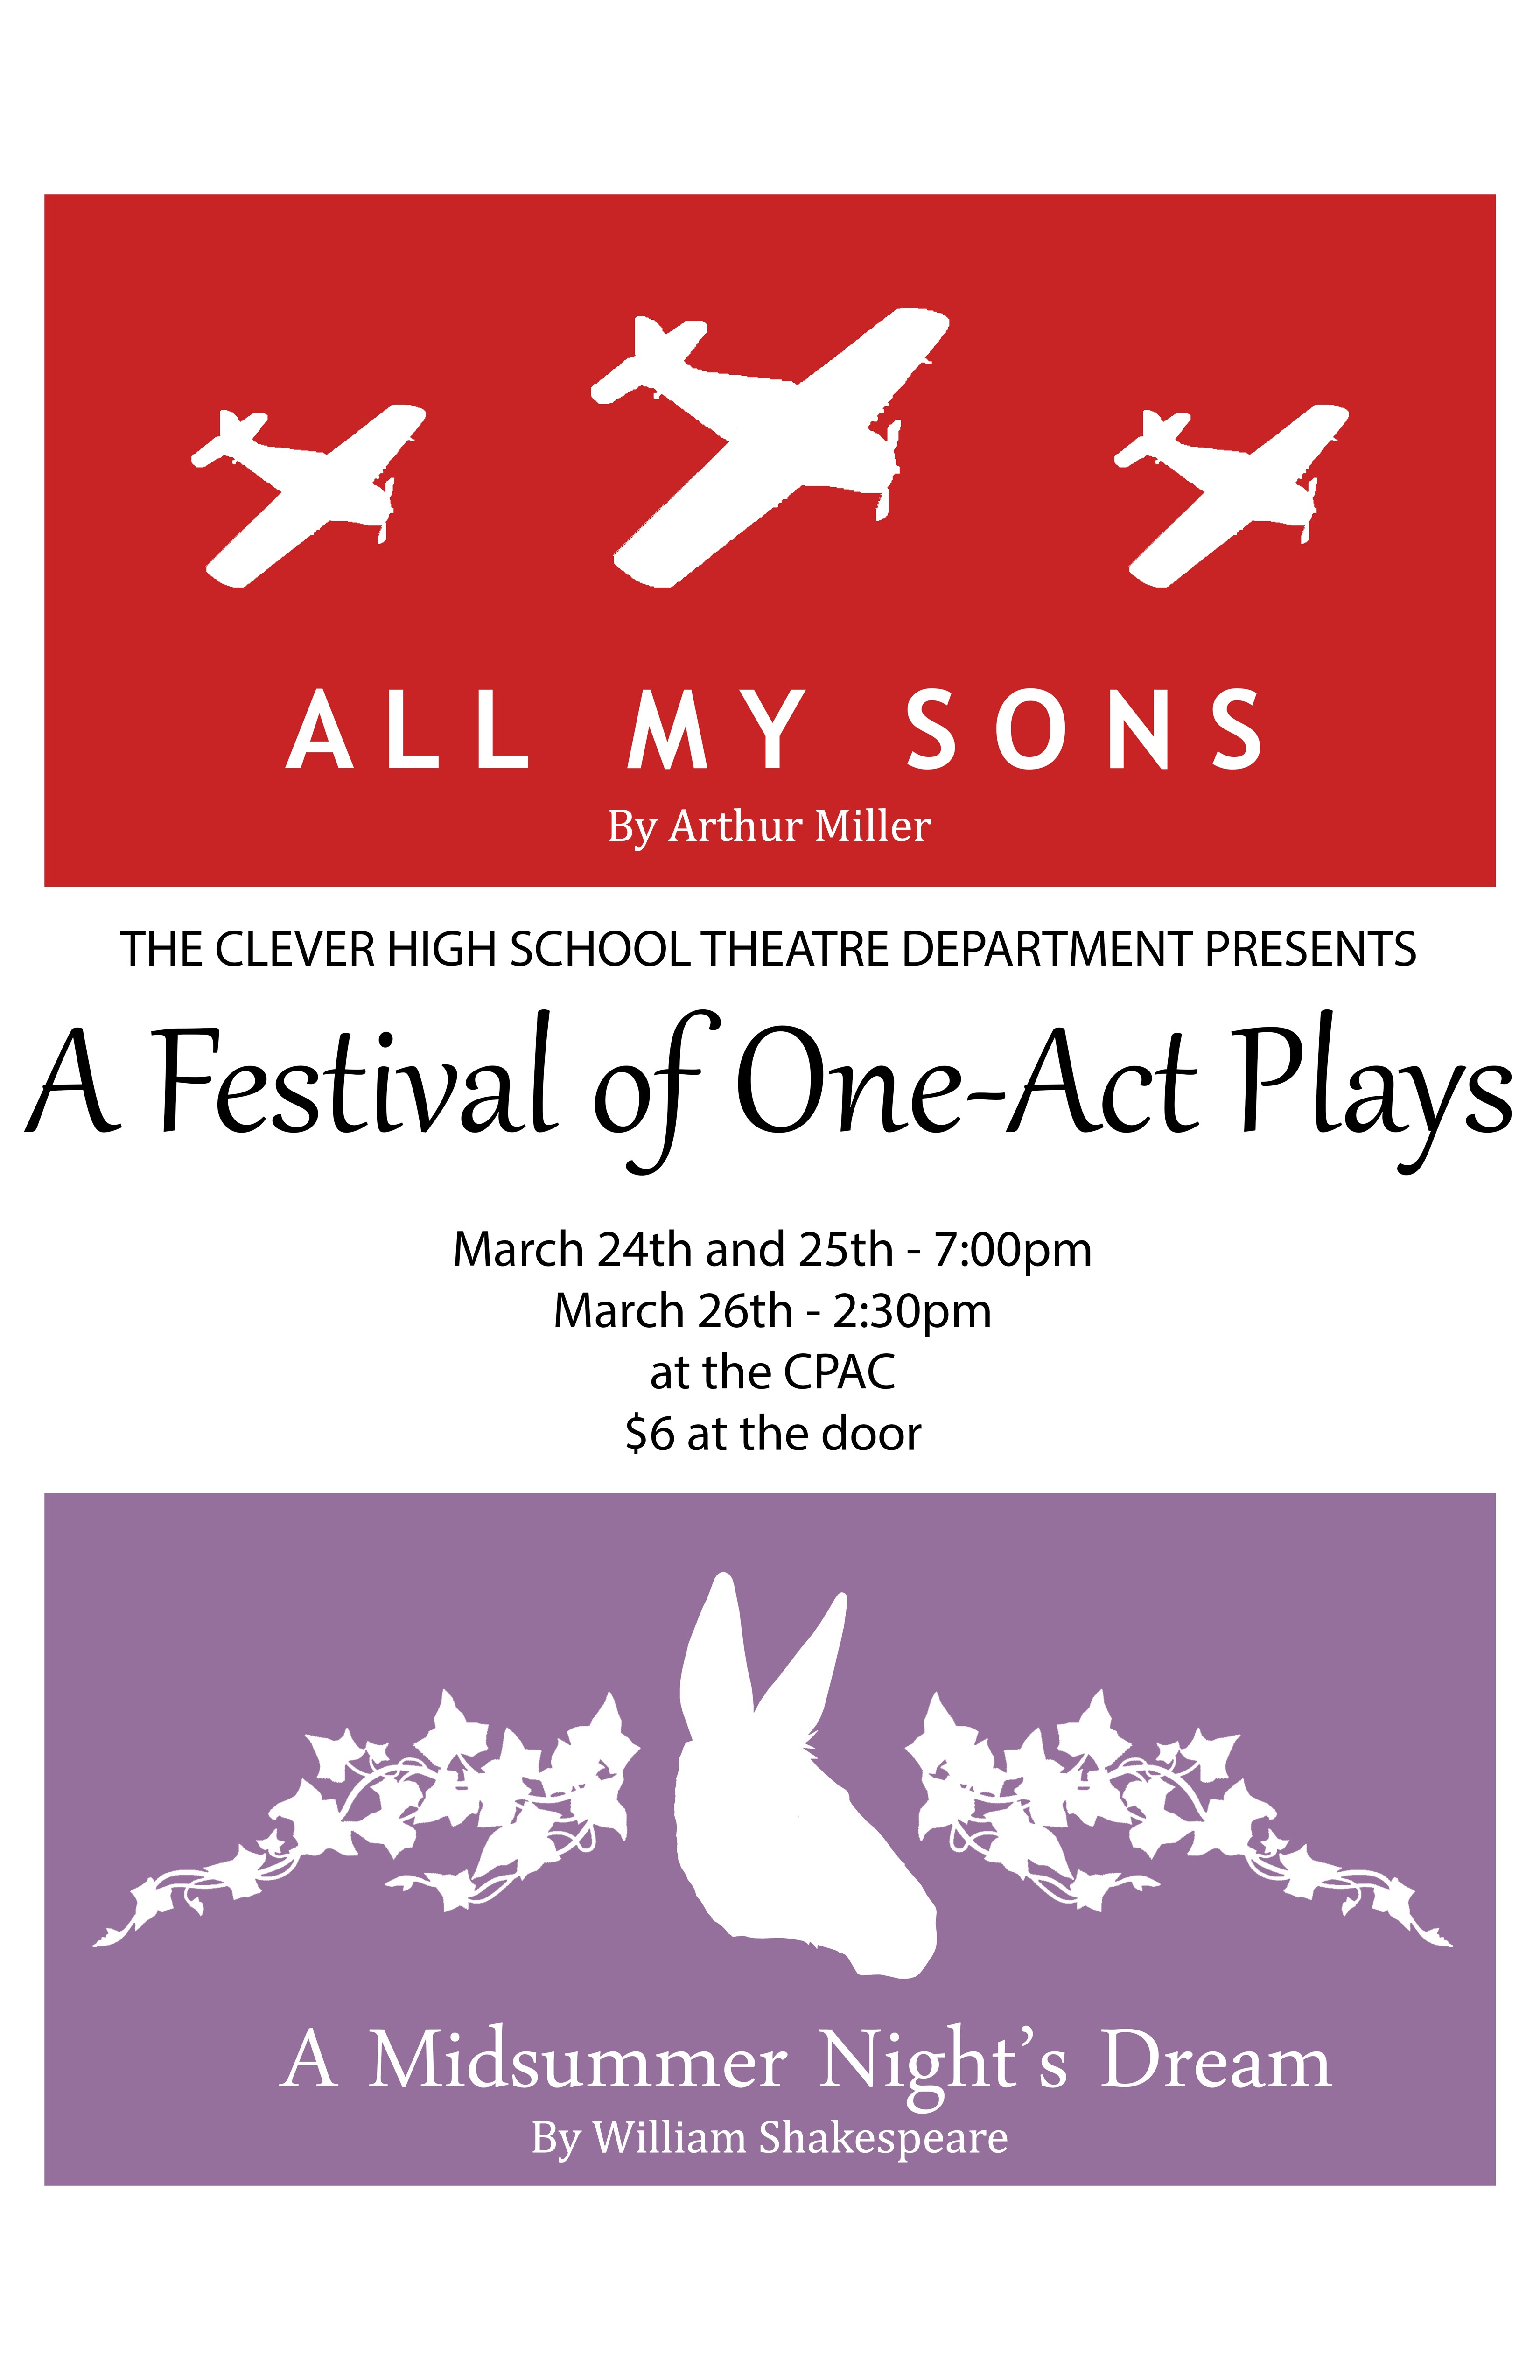 Join the Clever Theatre Department for it's first ever One